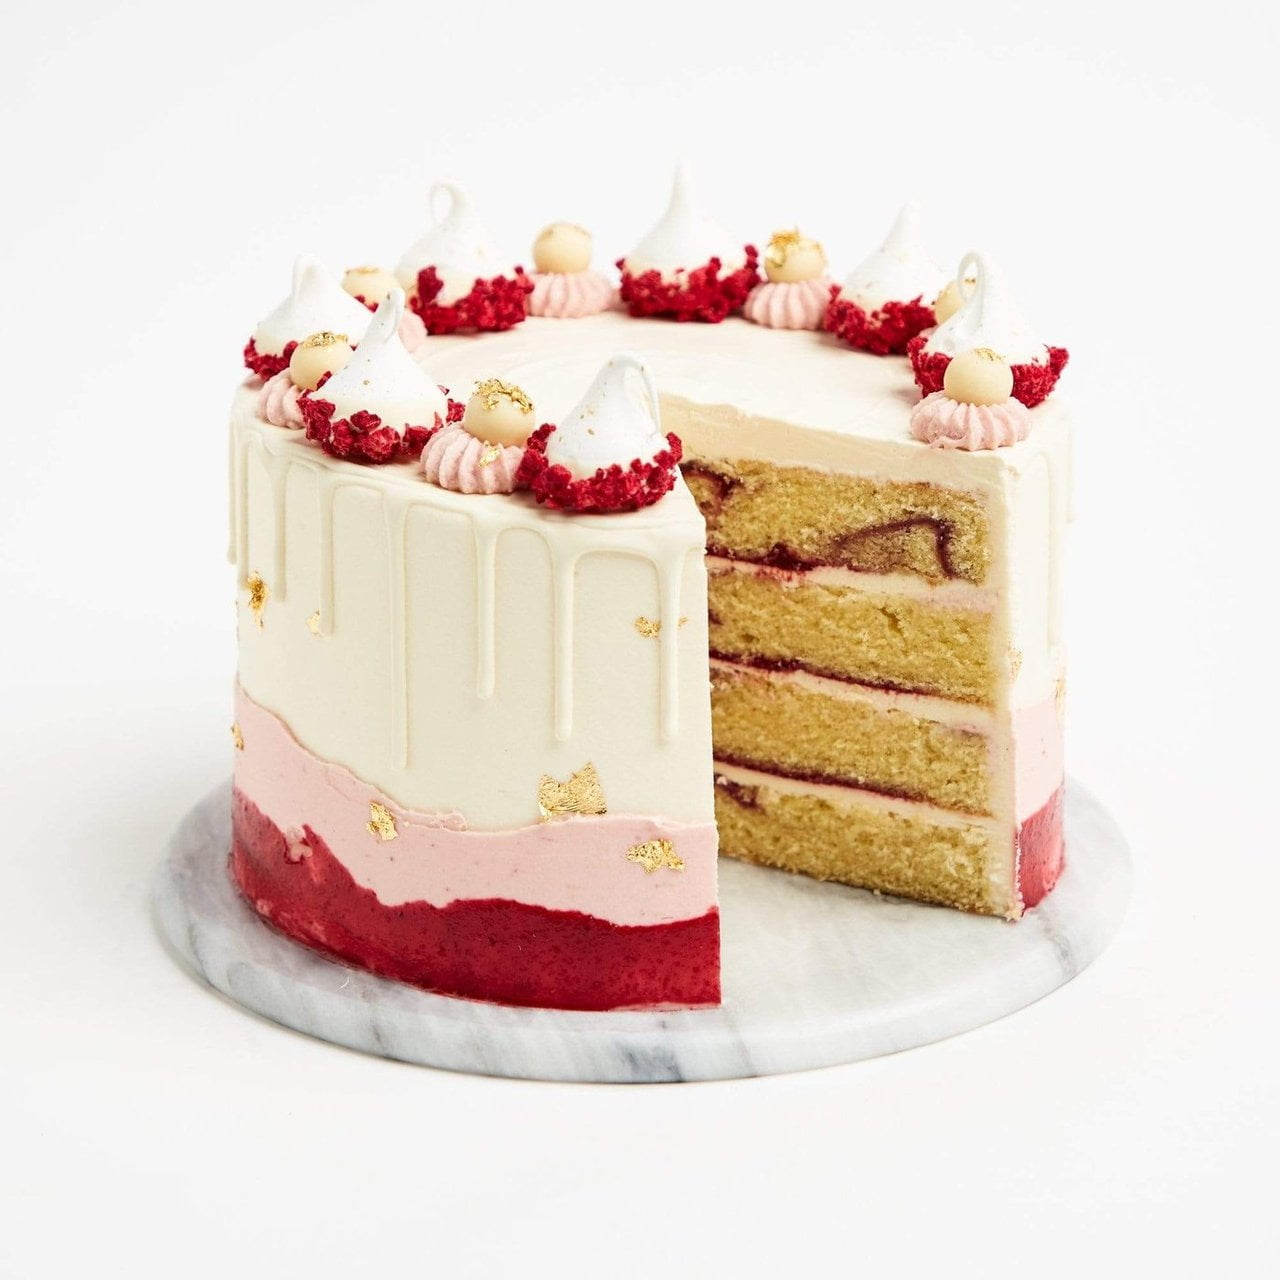 Raspberry & White Chocolate Cake